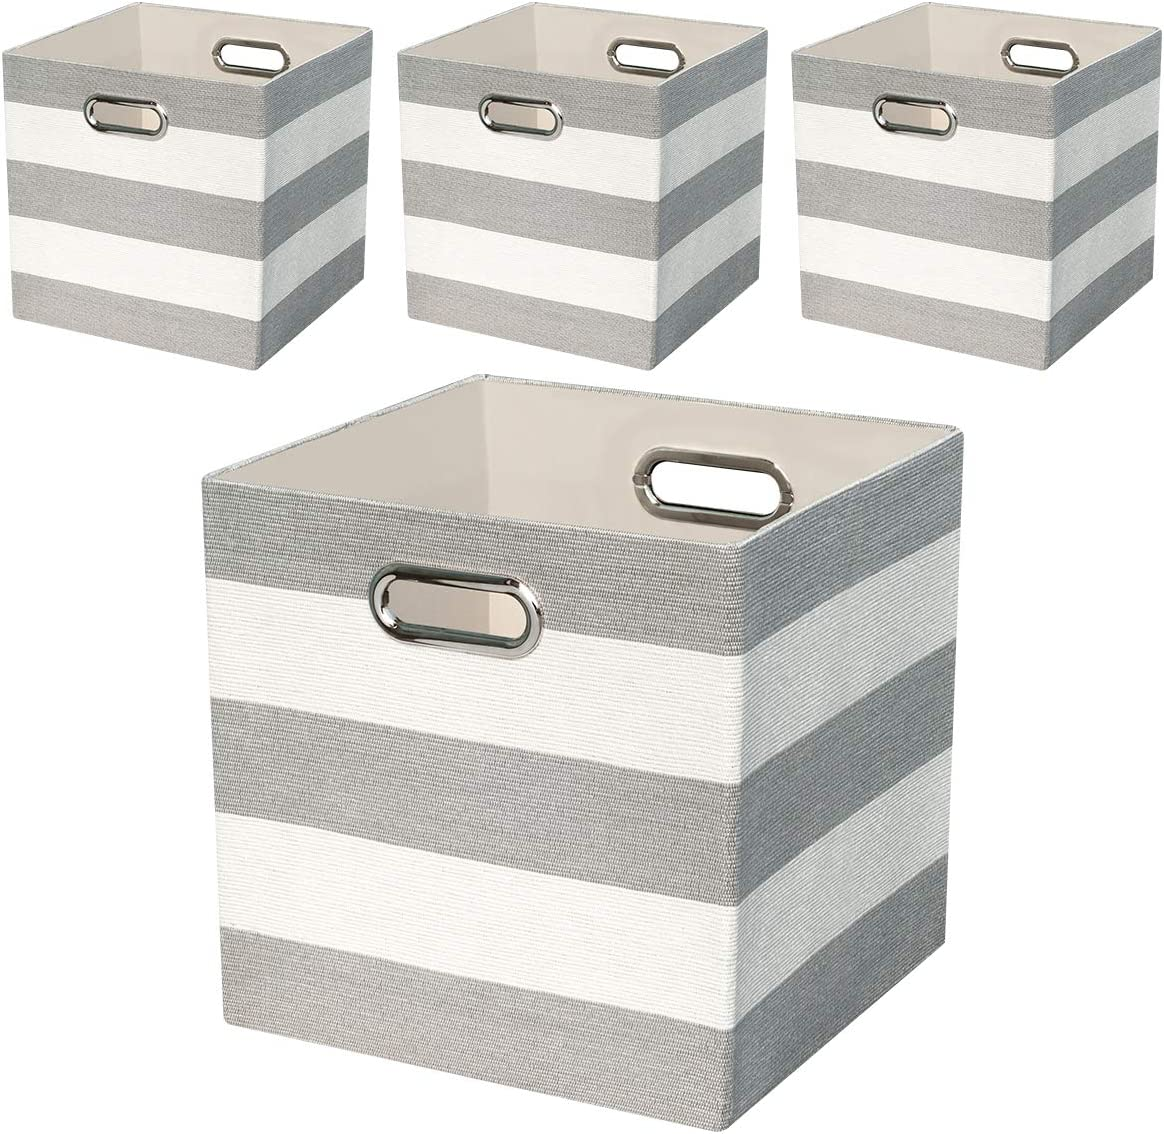 Amazon Com Storage Bins Storage Cubes 11 11 Collapsible Storage Boxes Containers Organizer Baskets For Nursery Office Closet Shelf 4pcs Grey White Striped Home Kitchen